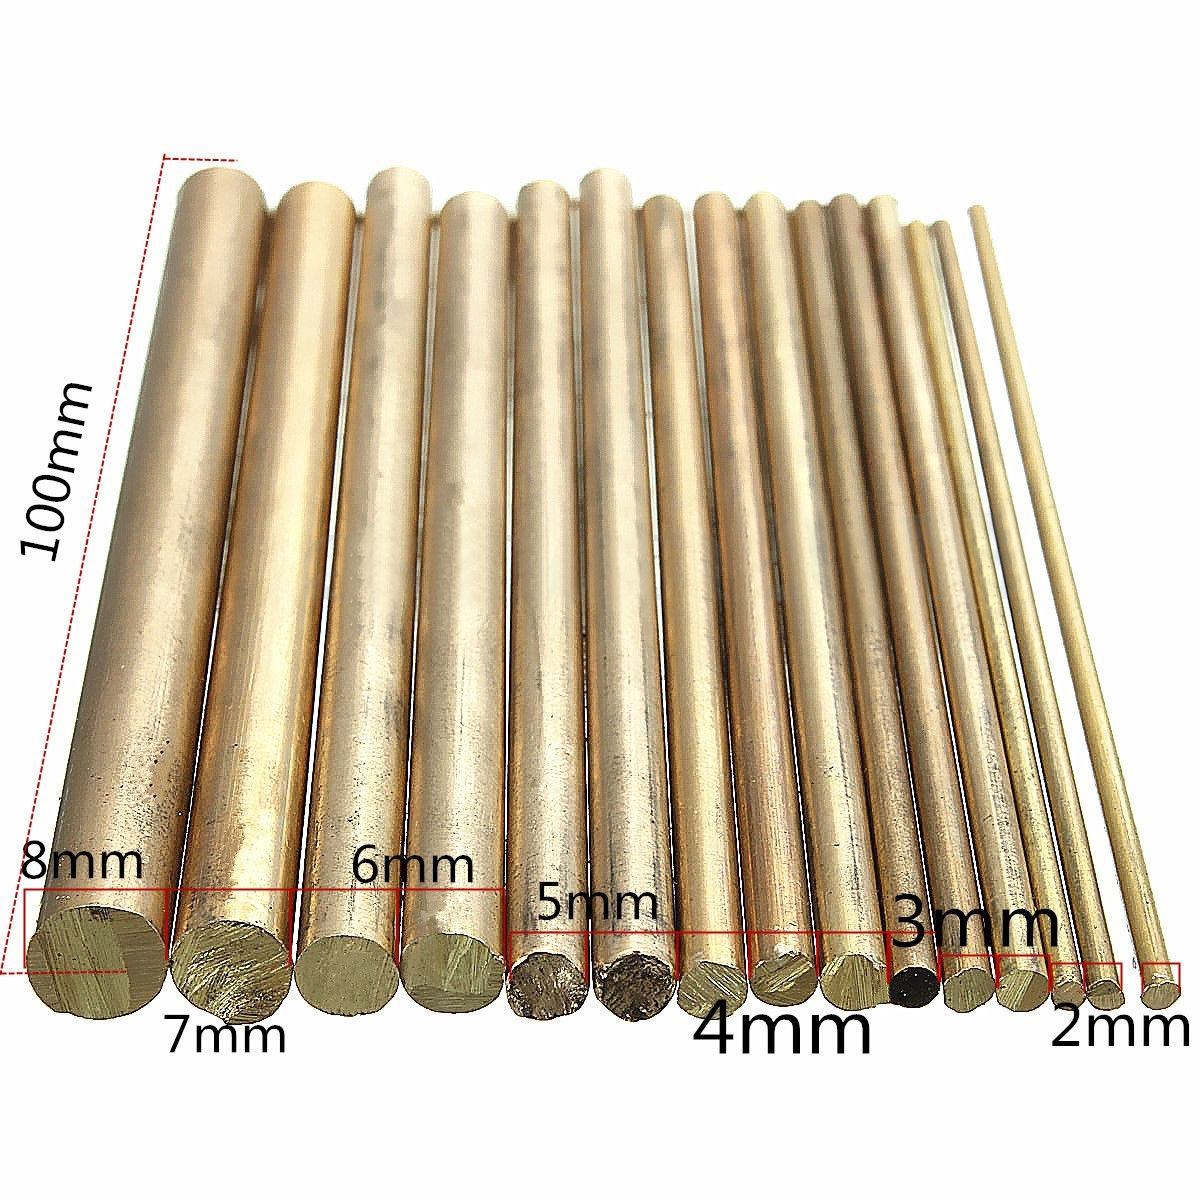 15pcs Copper Brass Round Rods Shafts Bar Watchmaker Lathe Watch Tool Craft Parts Mayitr For DIY Craft Making 100mm Length 16pcs professional watch repair kit for watchmaker